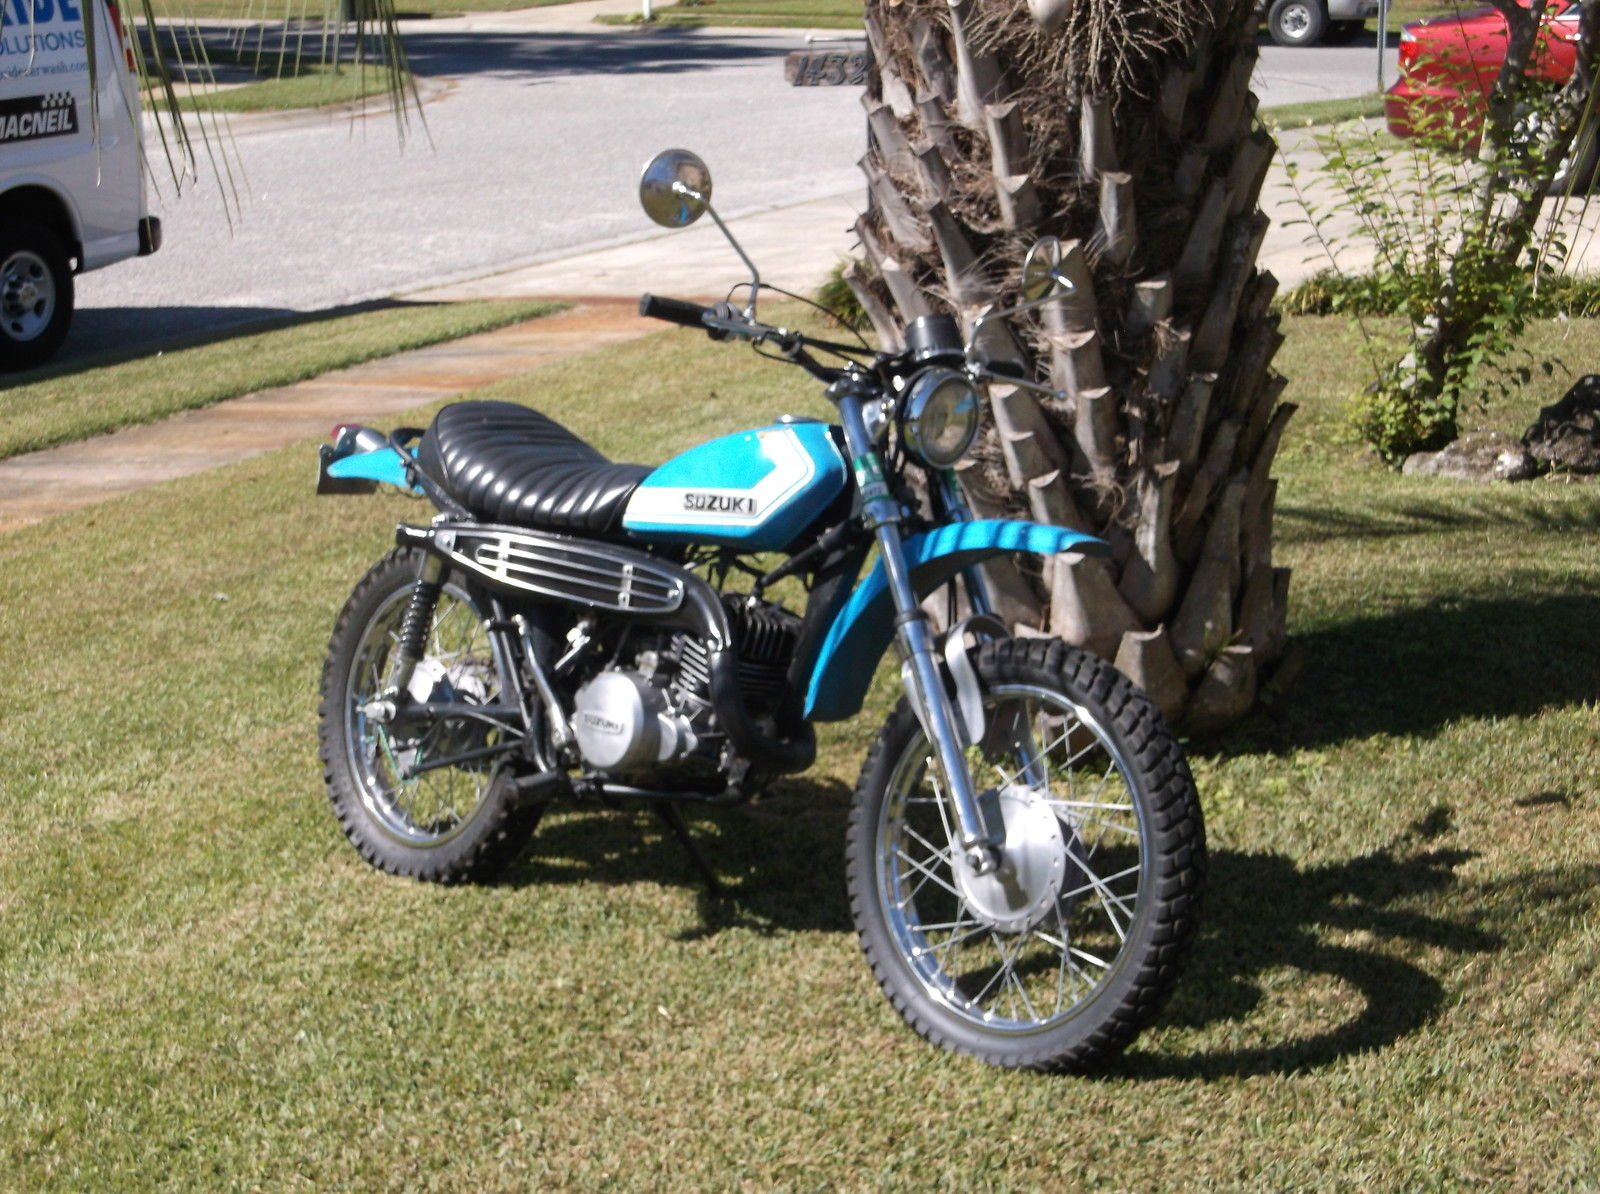 1972 ts 250 savage suzuki dual sport. Black Bedroom Furniture Sets. Home Design Ideas